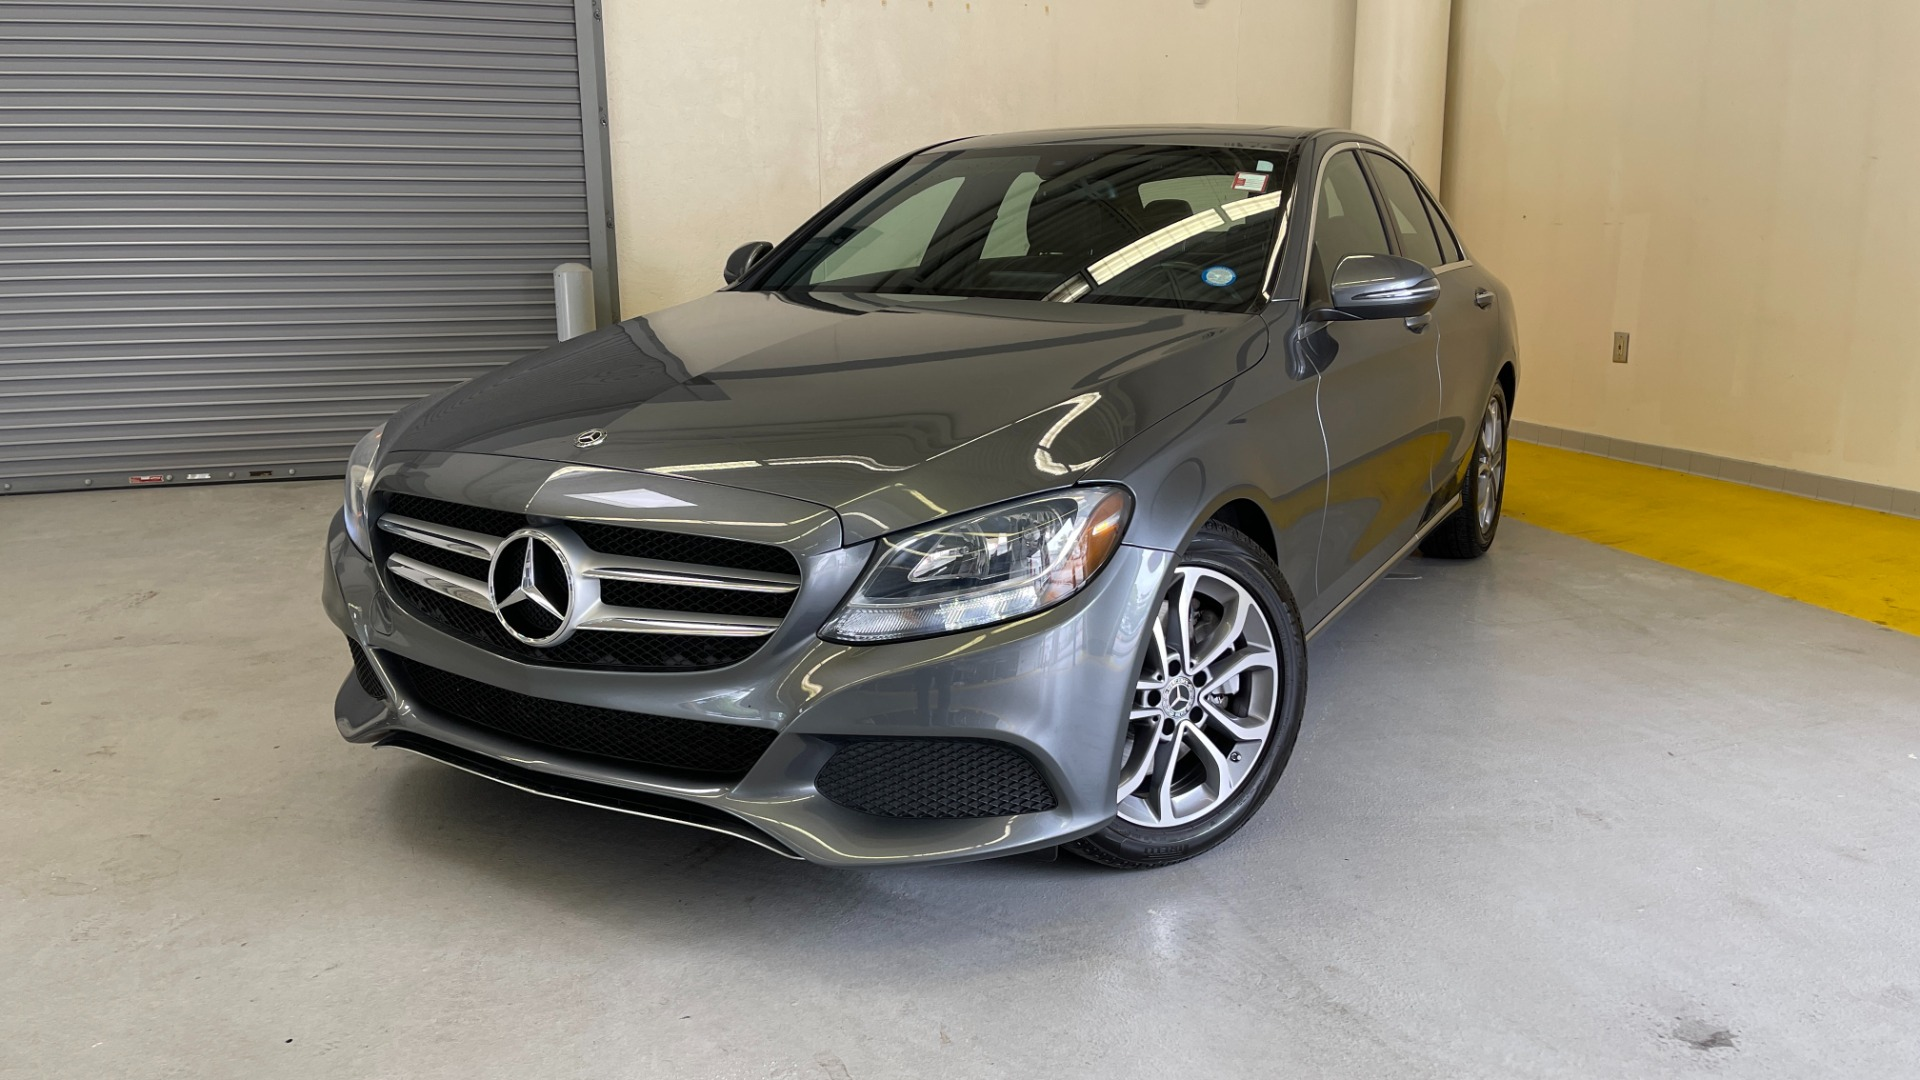 Used 2018 Mercedes-Benz C-CLASS C 300 PREMIUM / SUNROOF / APPLE CARPLAY / HTD STS / REARVIEW for sale $31,795 at Formula Imports in Charlotte NC 28227 1